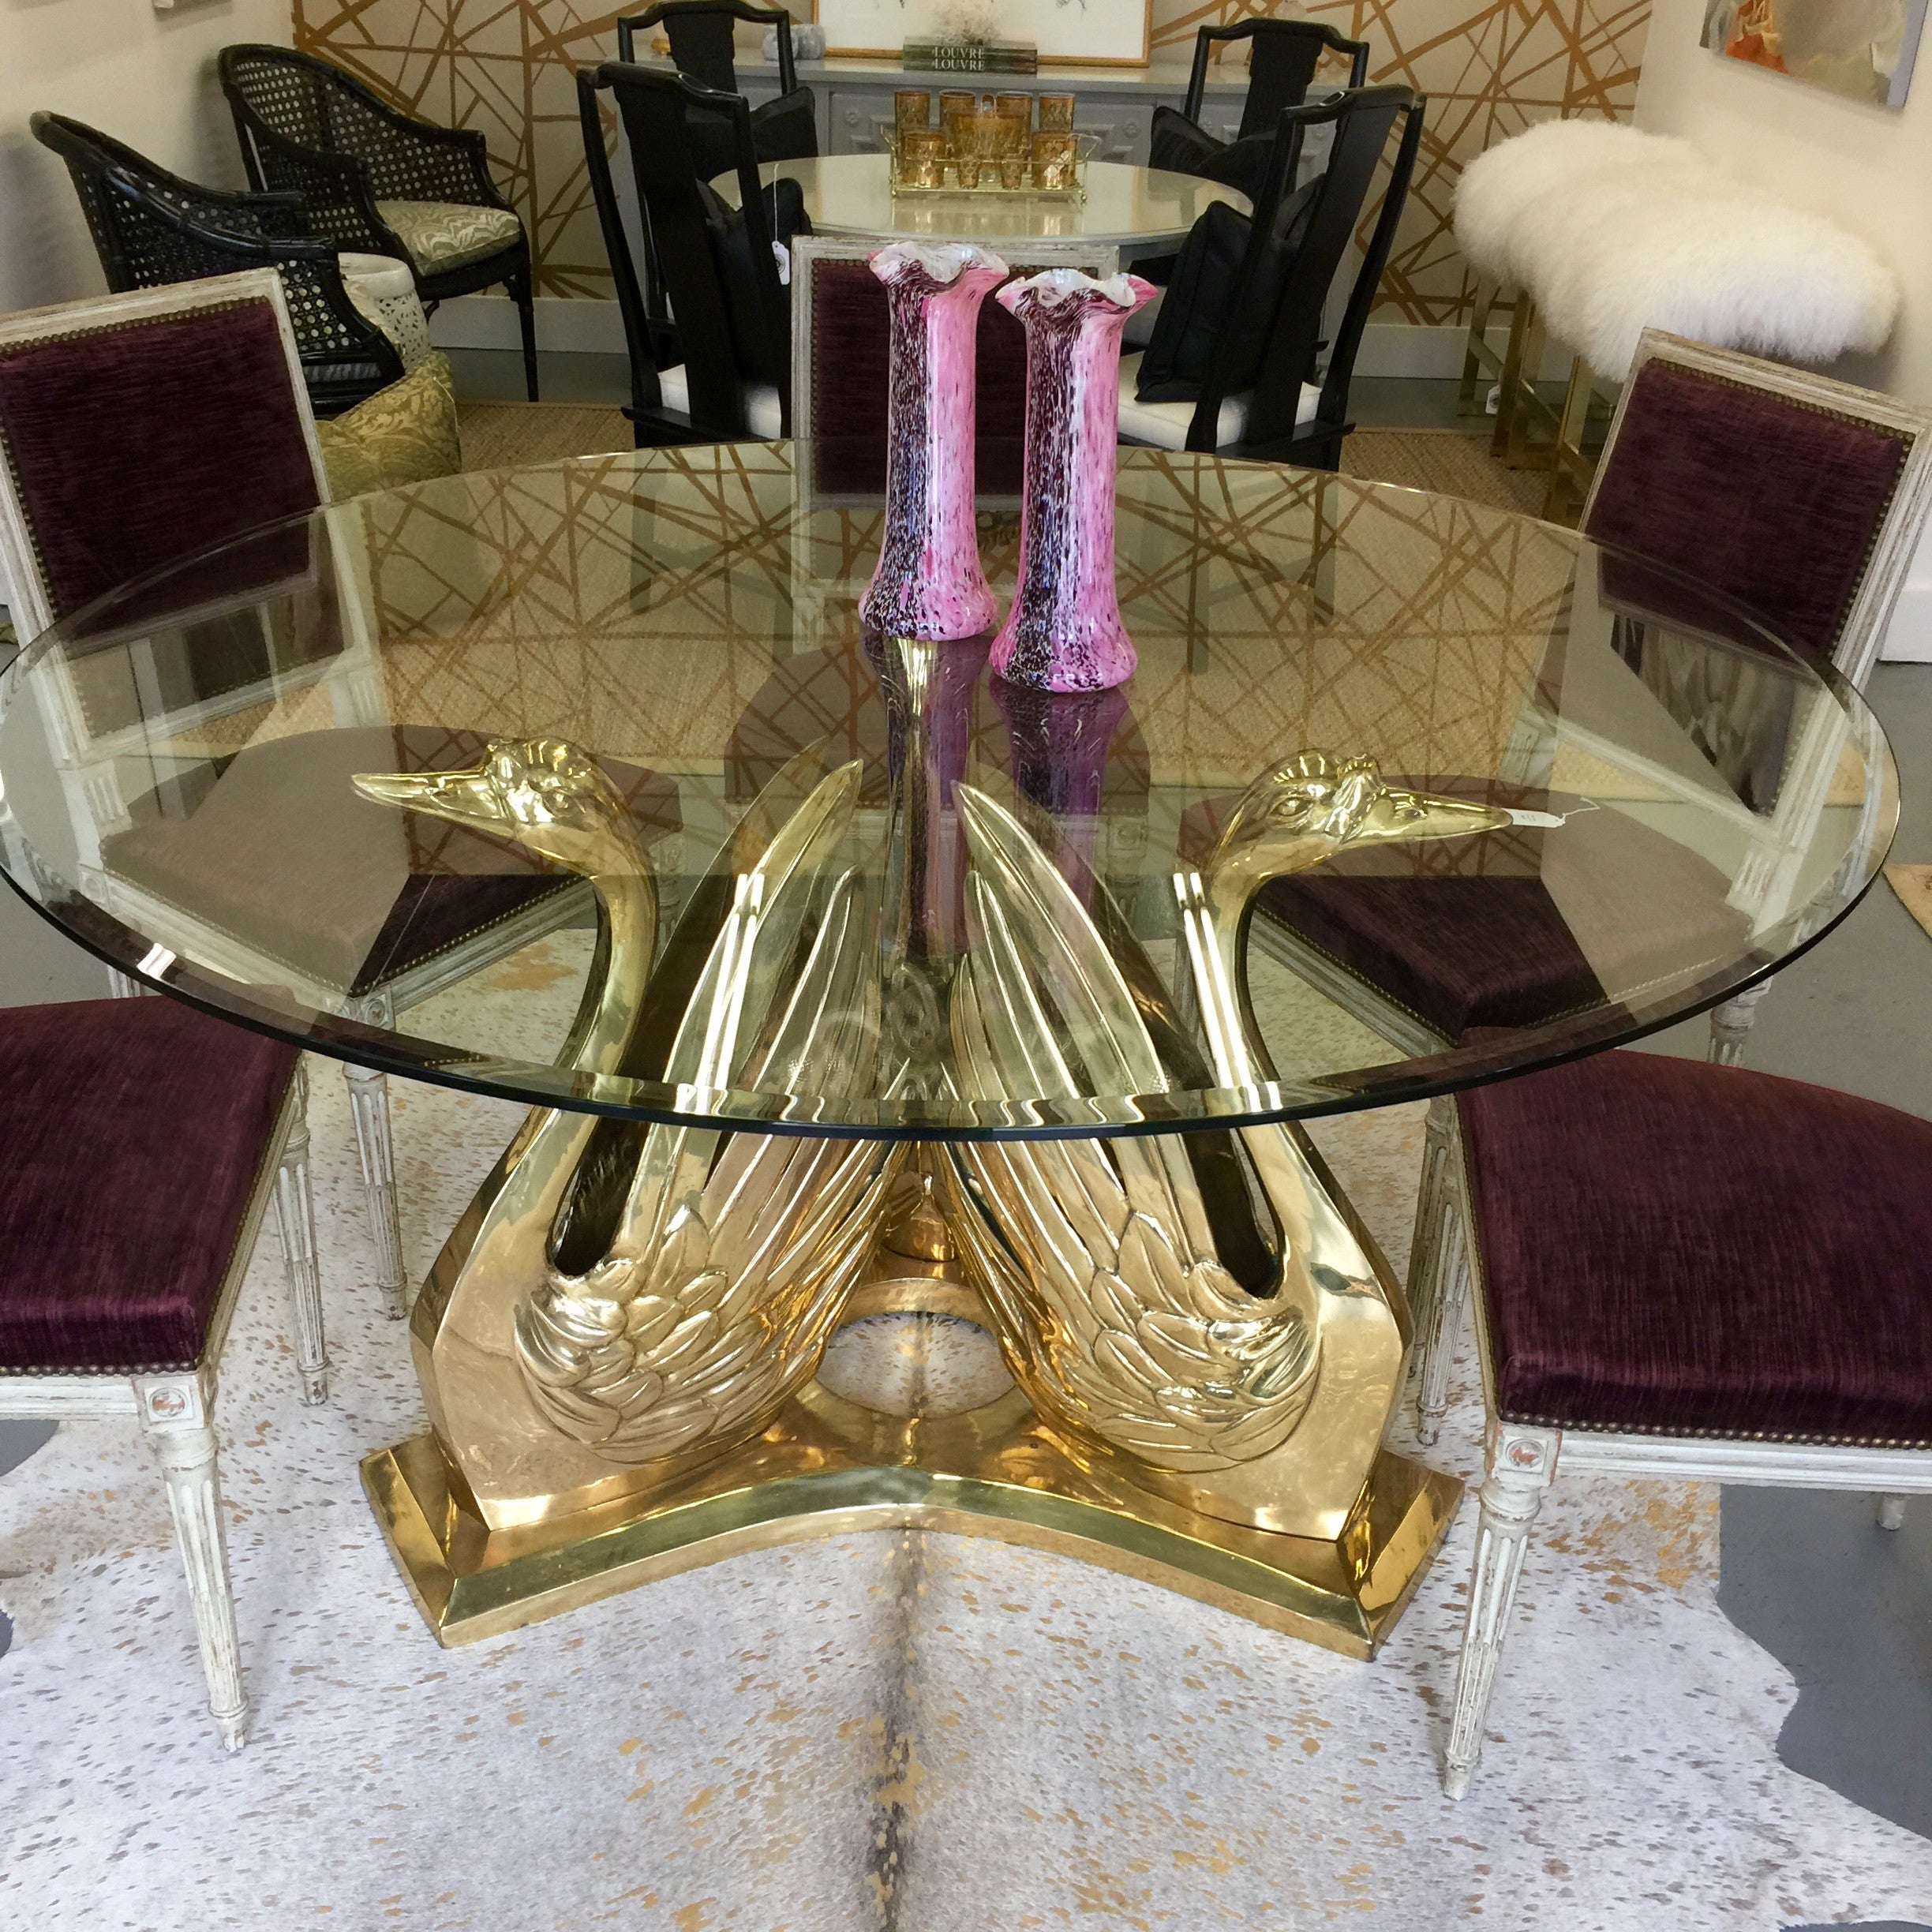 vintage brass swan table park eighth rh parkandeighth com crystal swan dining table ercol swan dining table and chairs